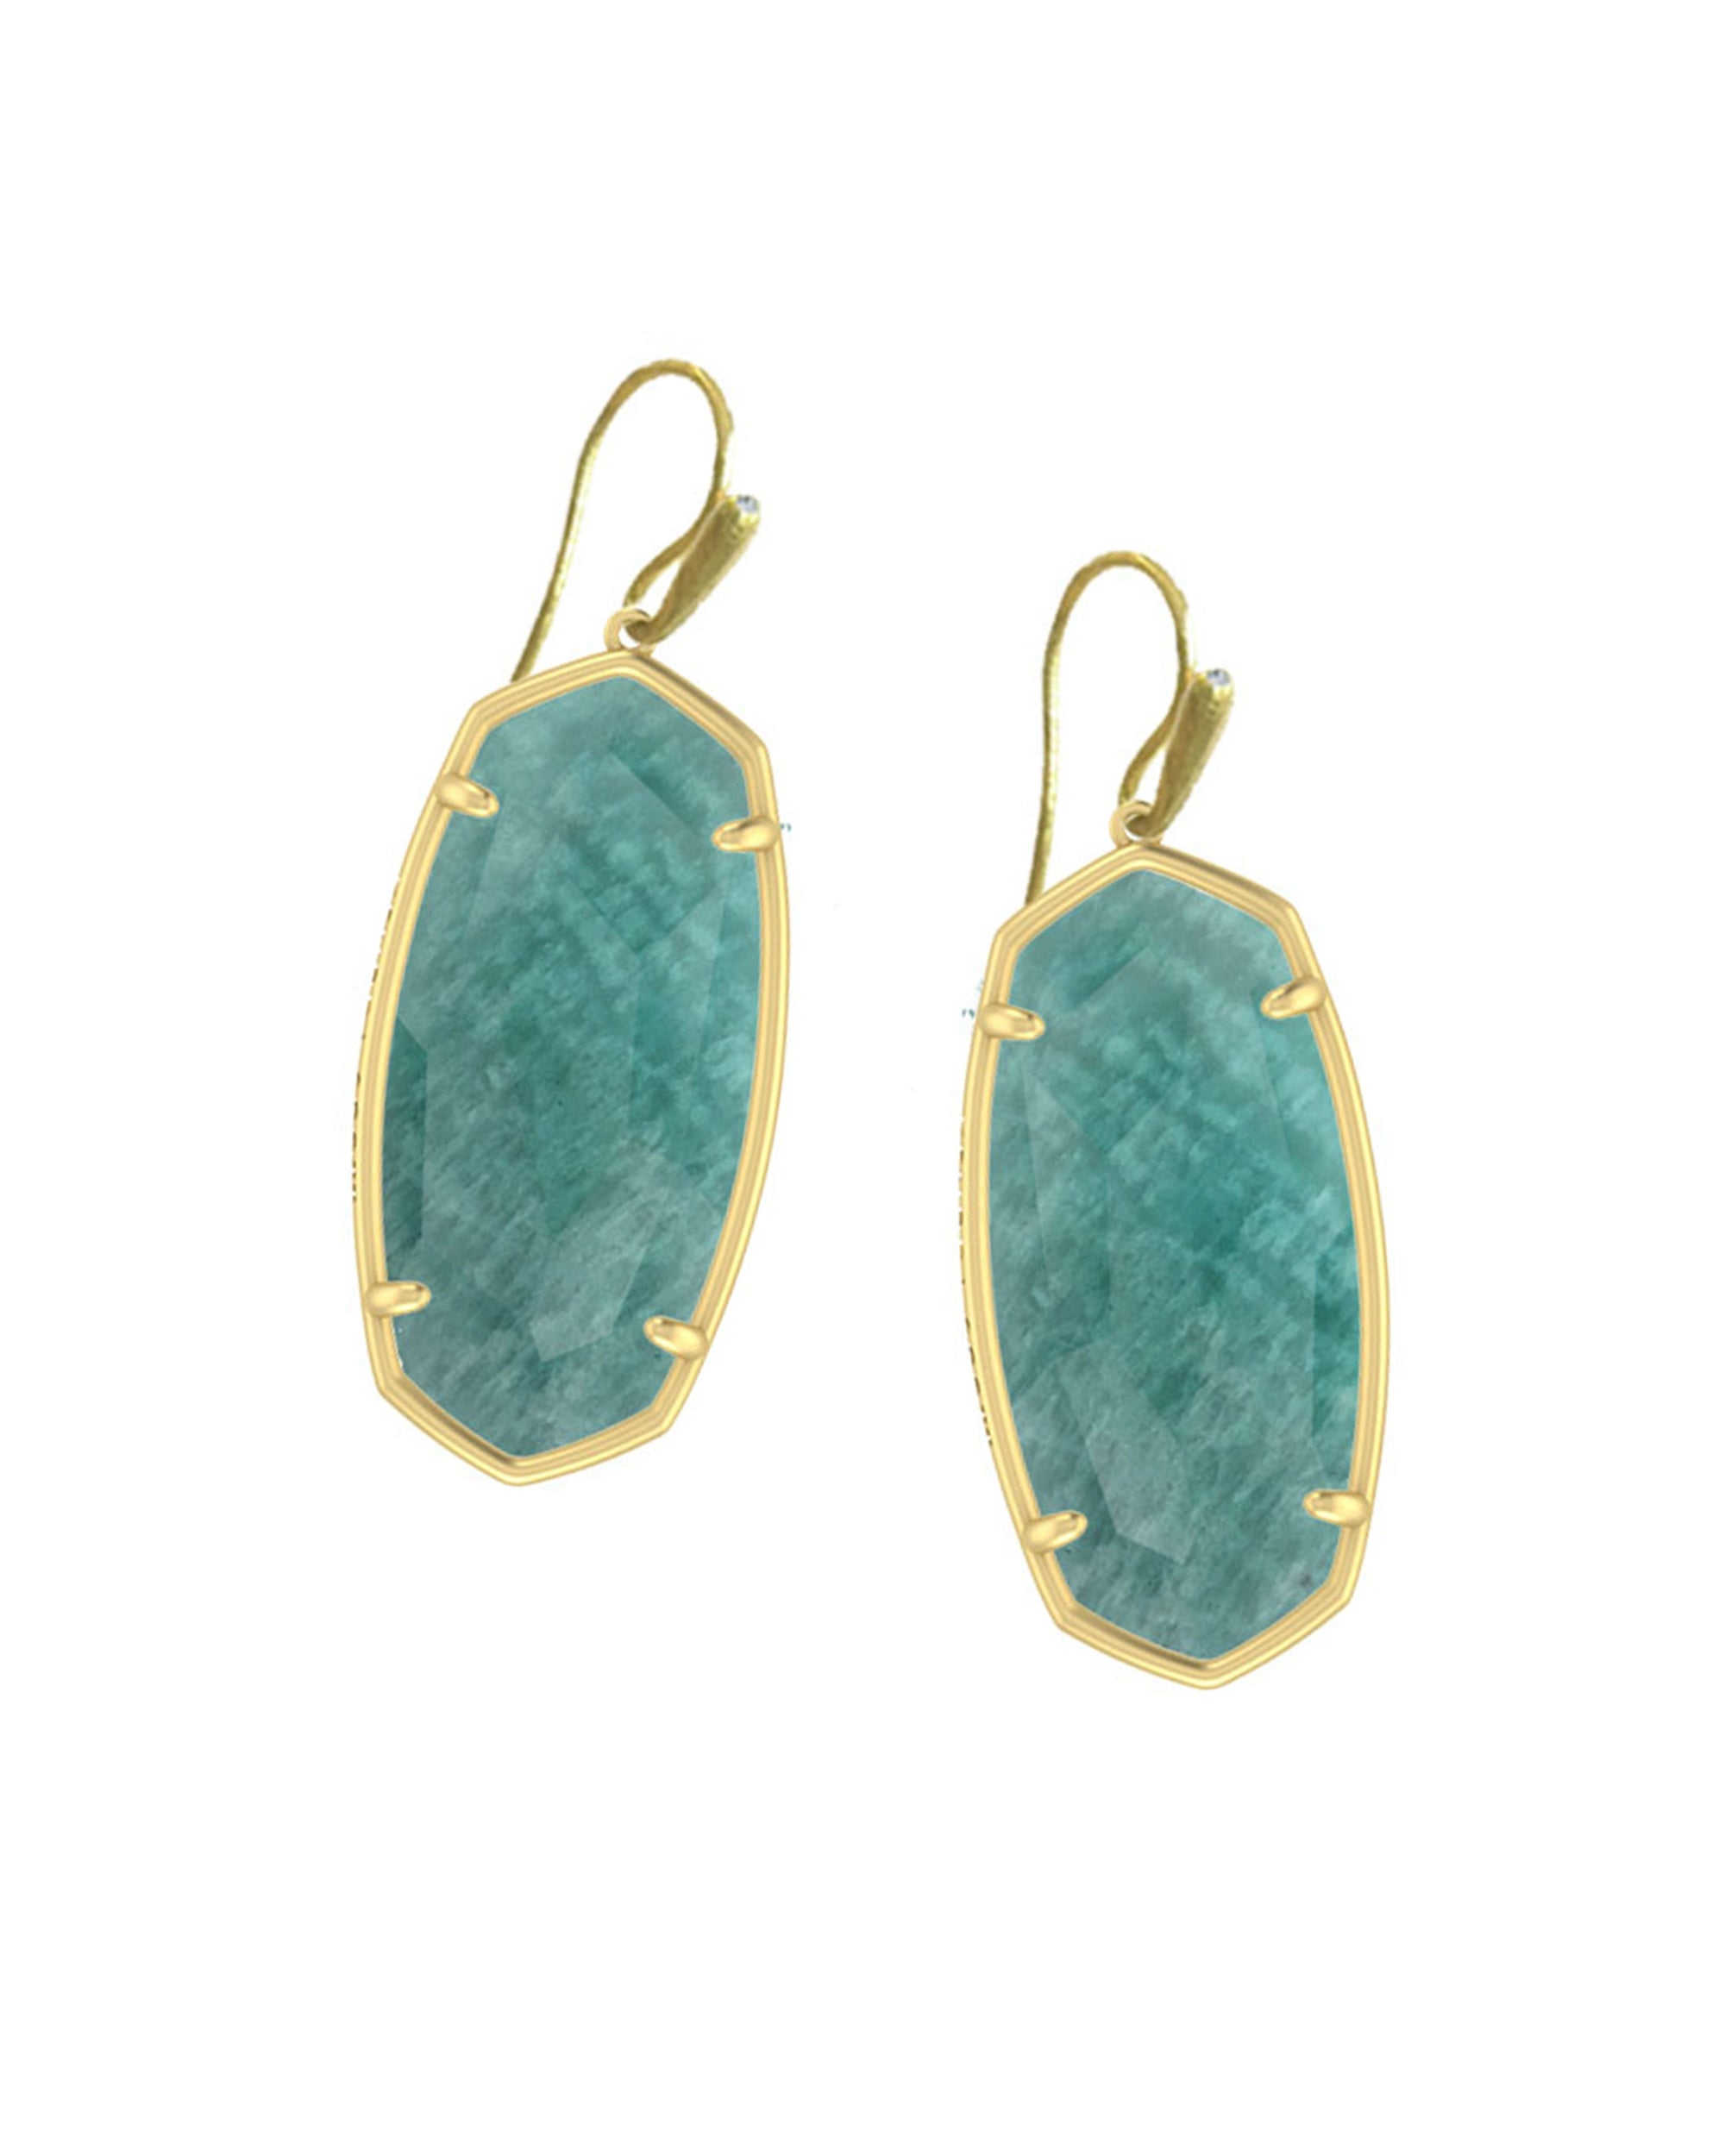 Faceted Elle Earrings Gold Dark Teal Amazonite